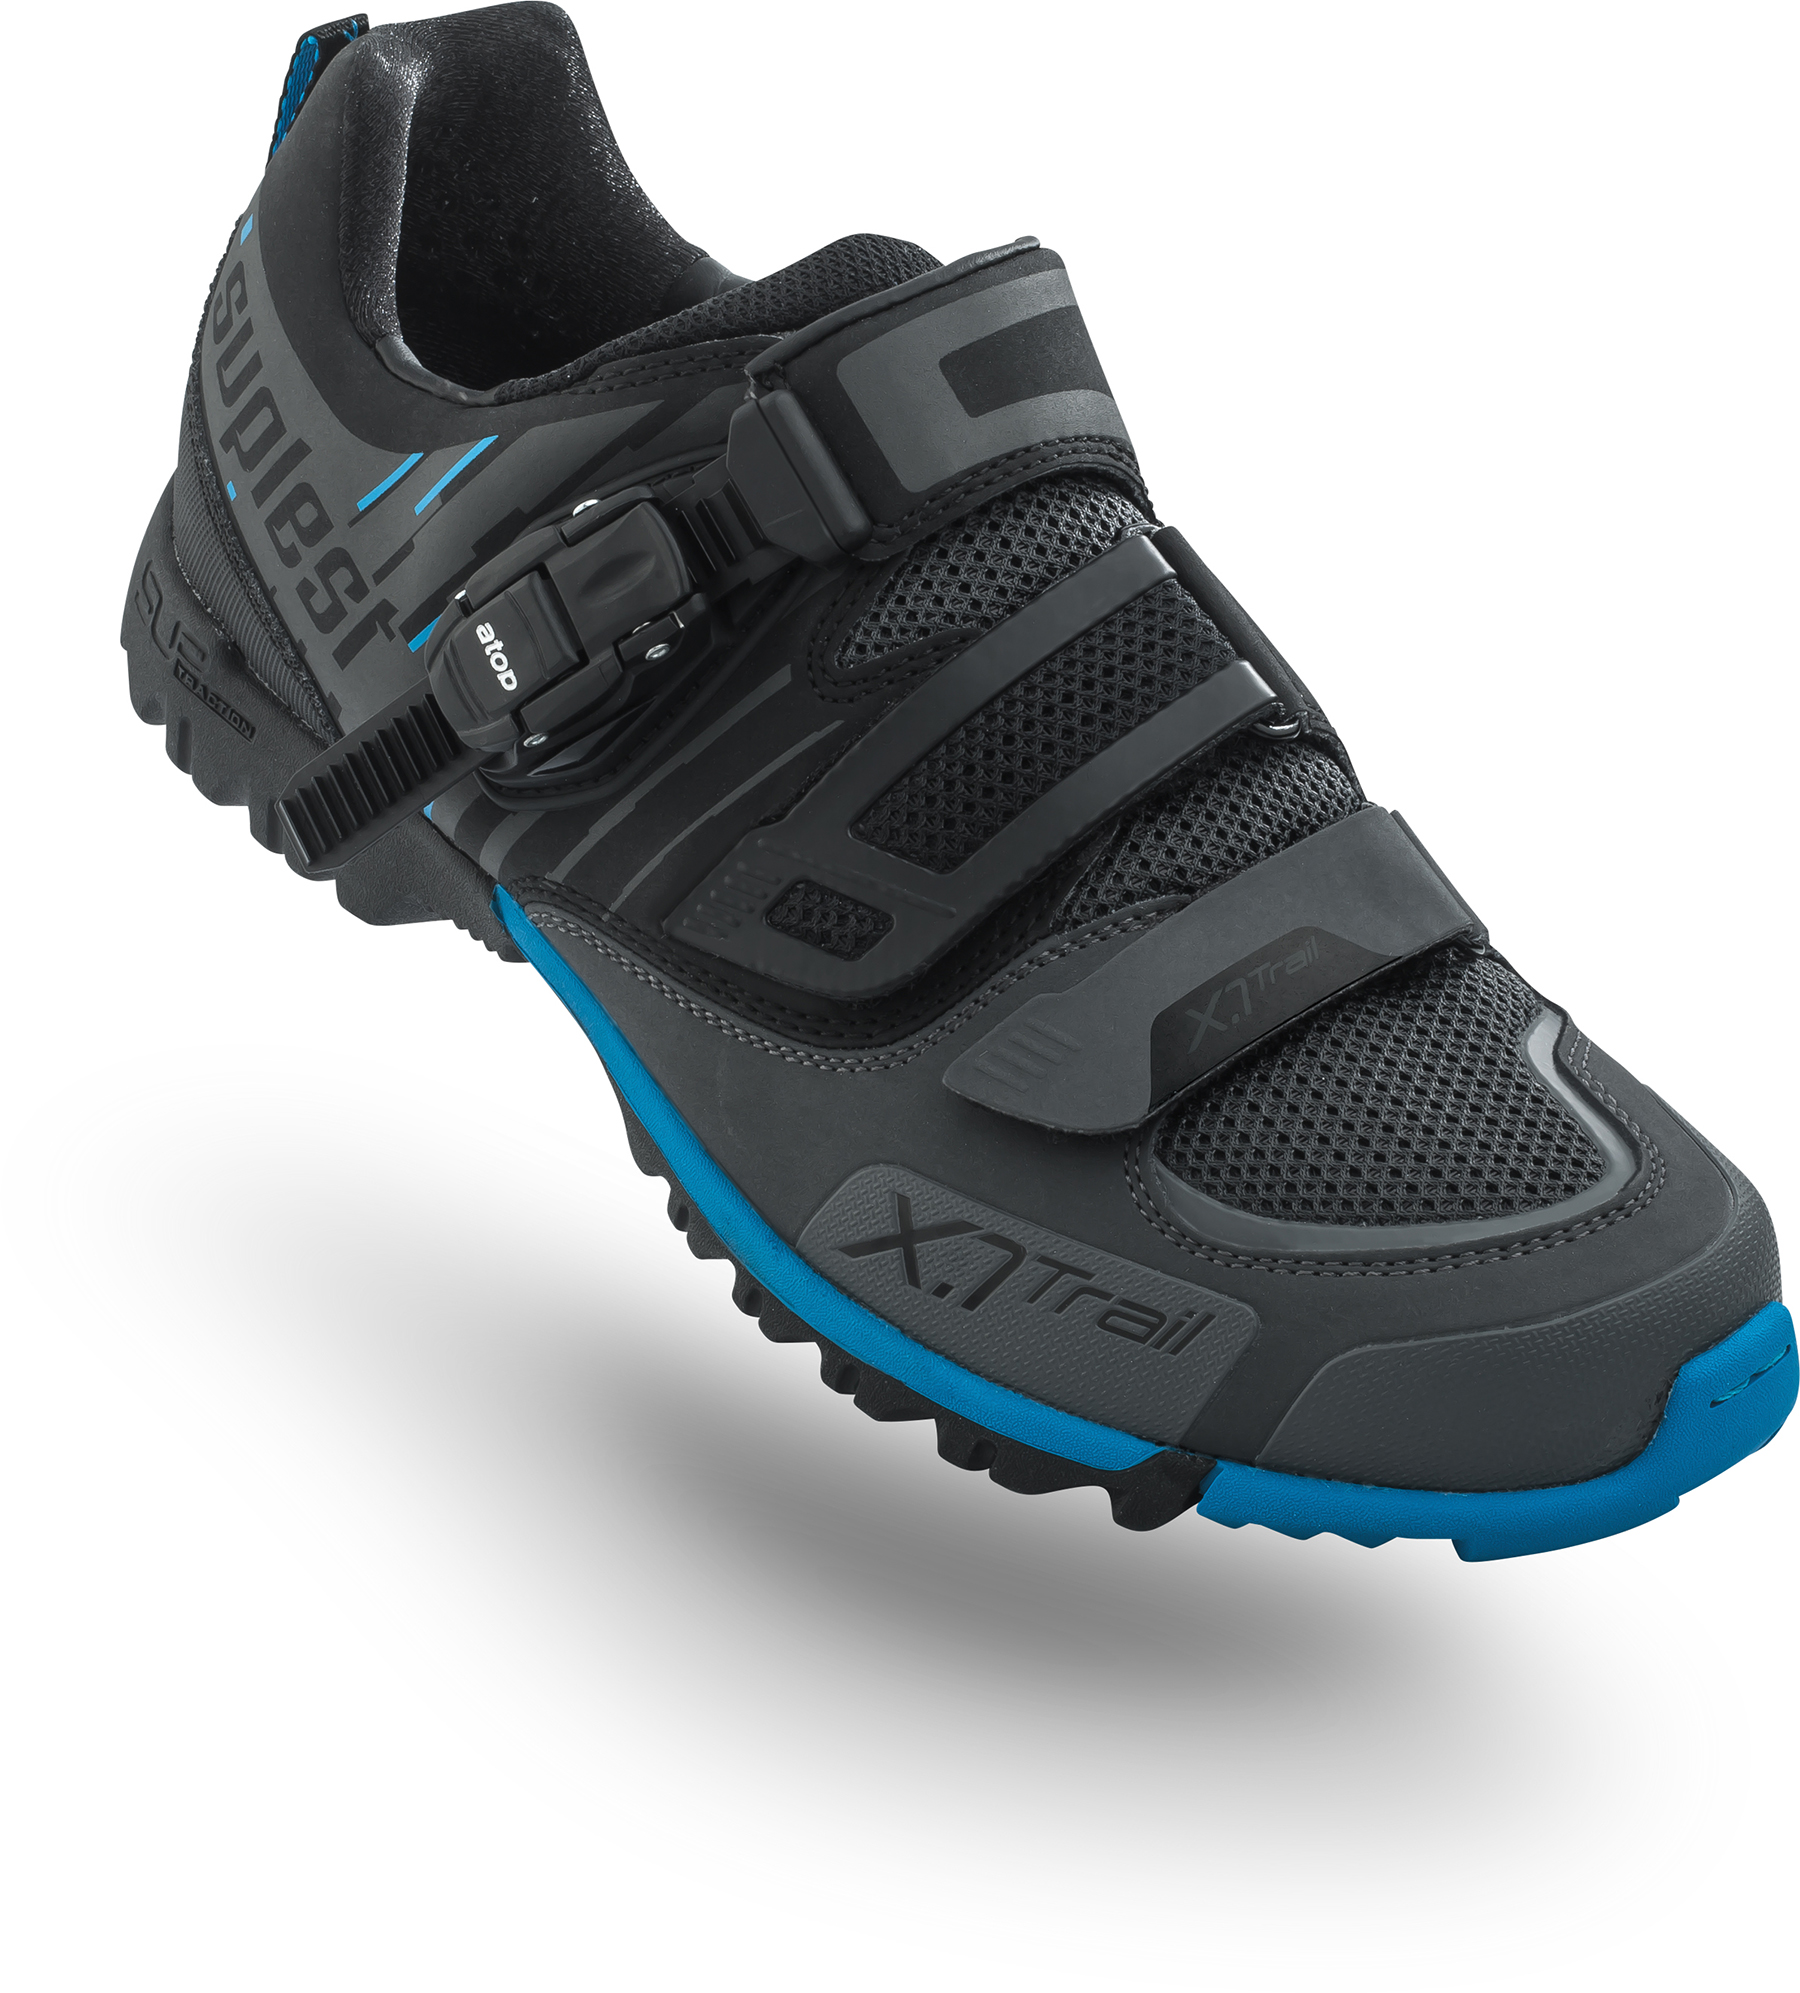 Suplest X.1 Trail Suptraction Off Road Shoe | Shoes and overlays